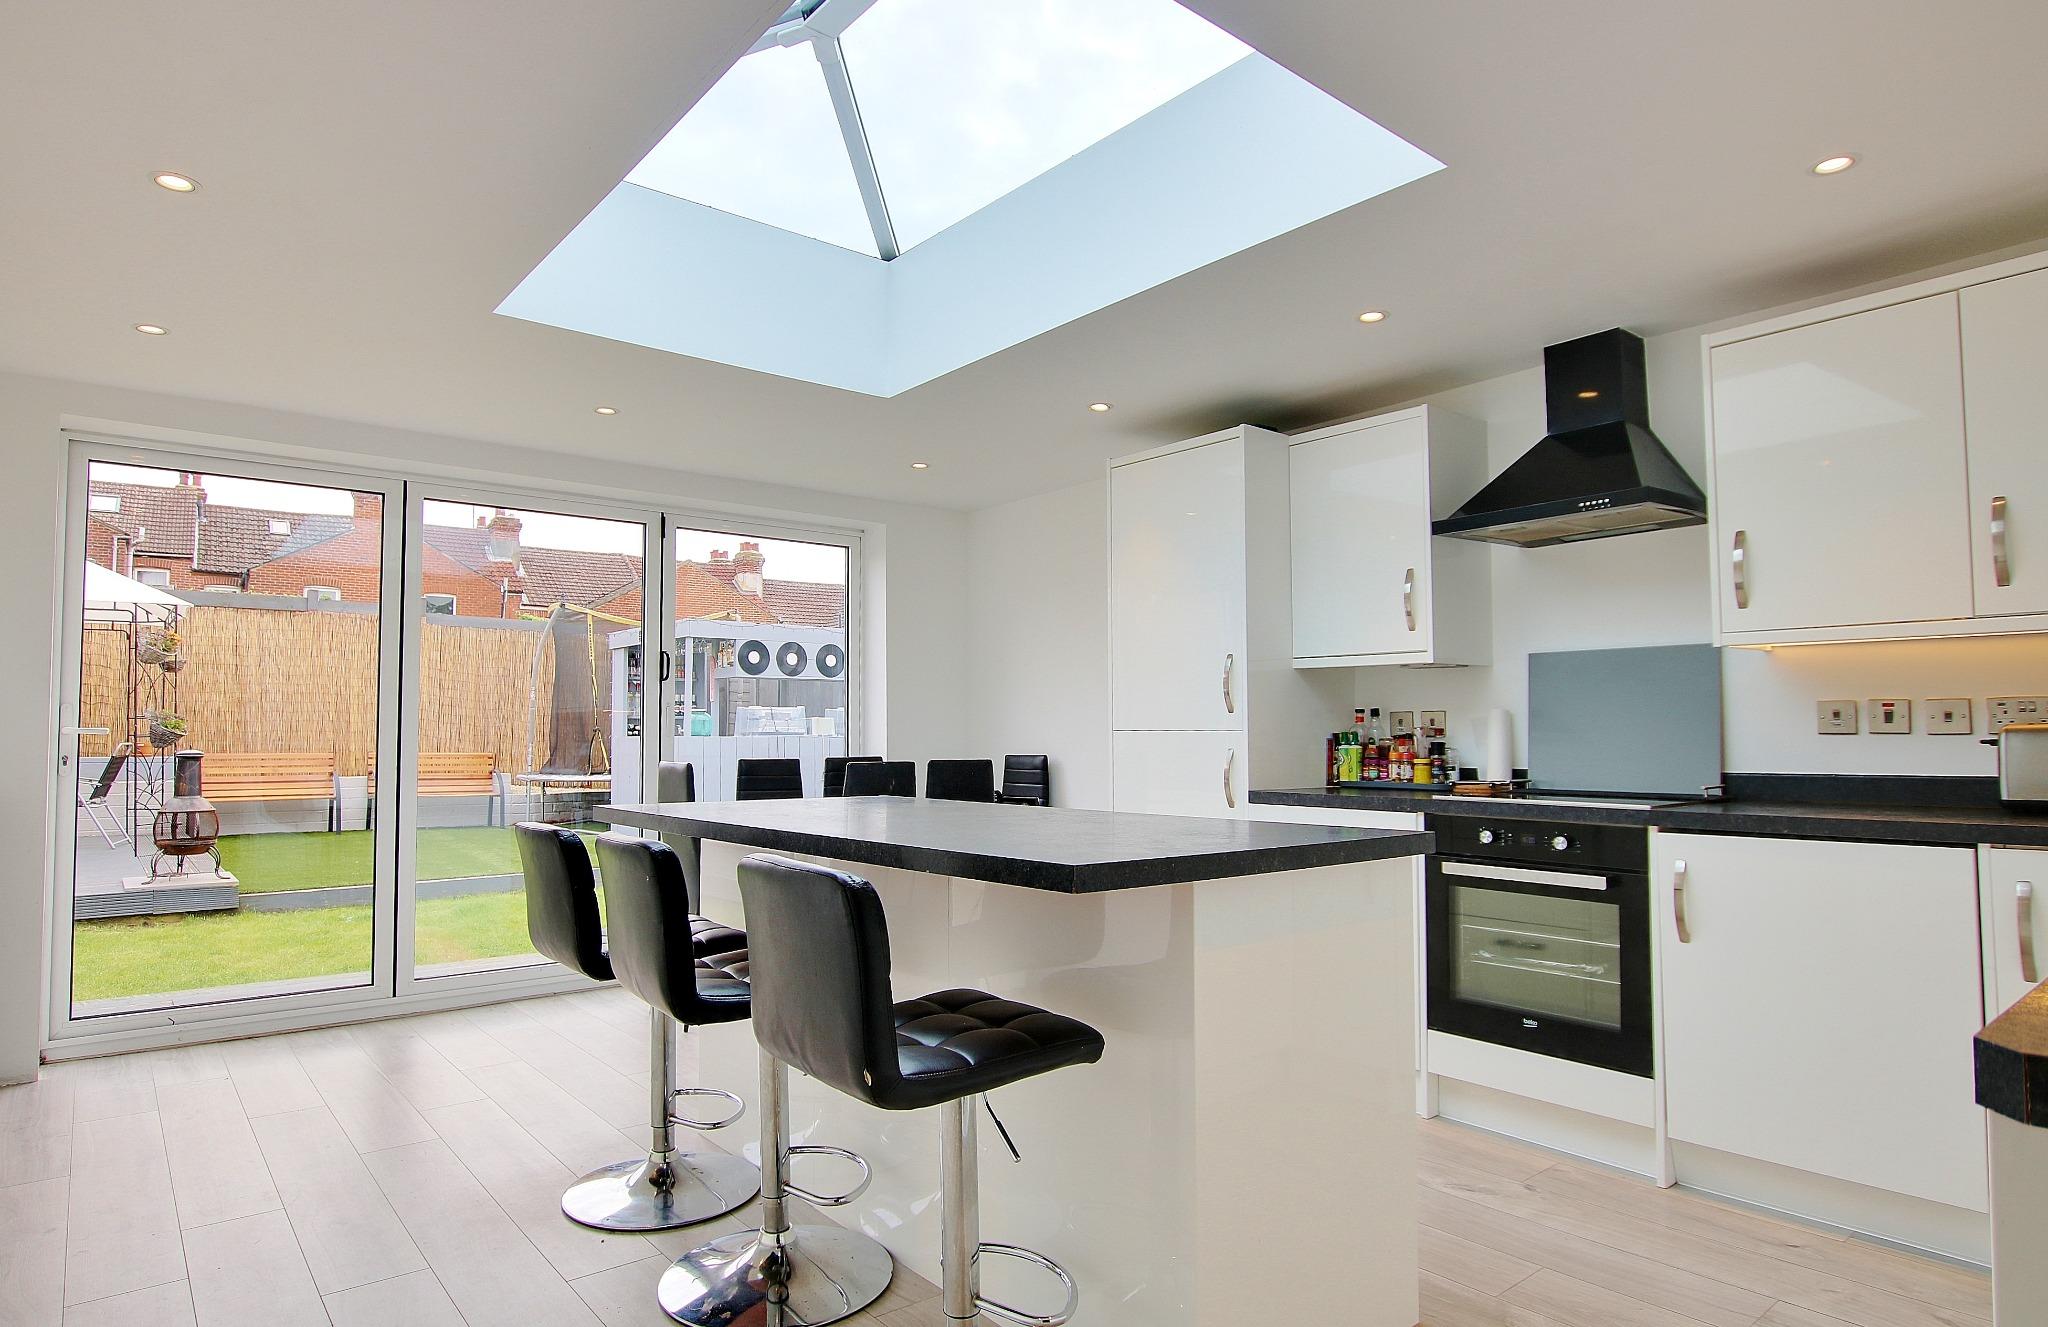 £280,000 - £300,000! IMPRESSIVE KITCHEN WITH GLASS LANTERN! A MUST SEE!